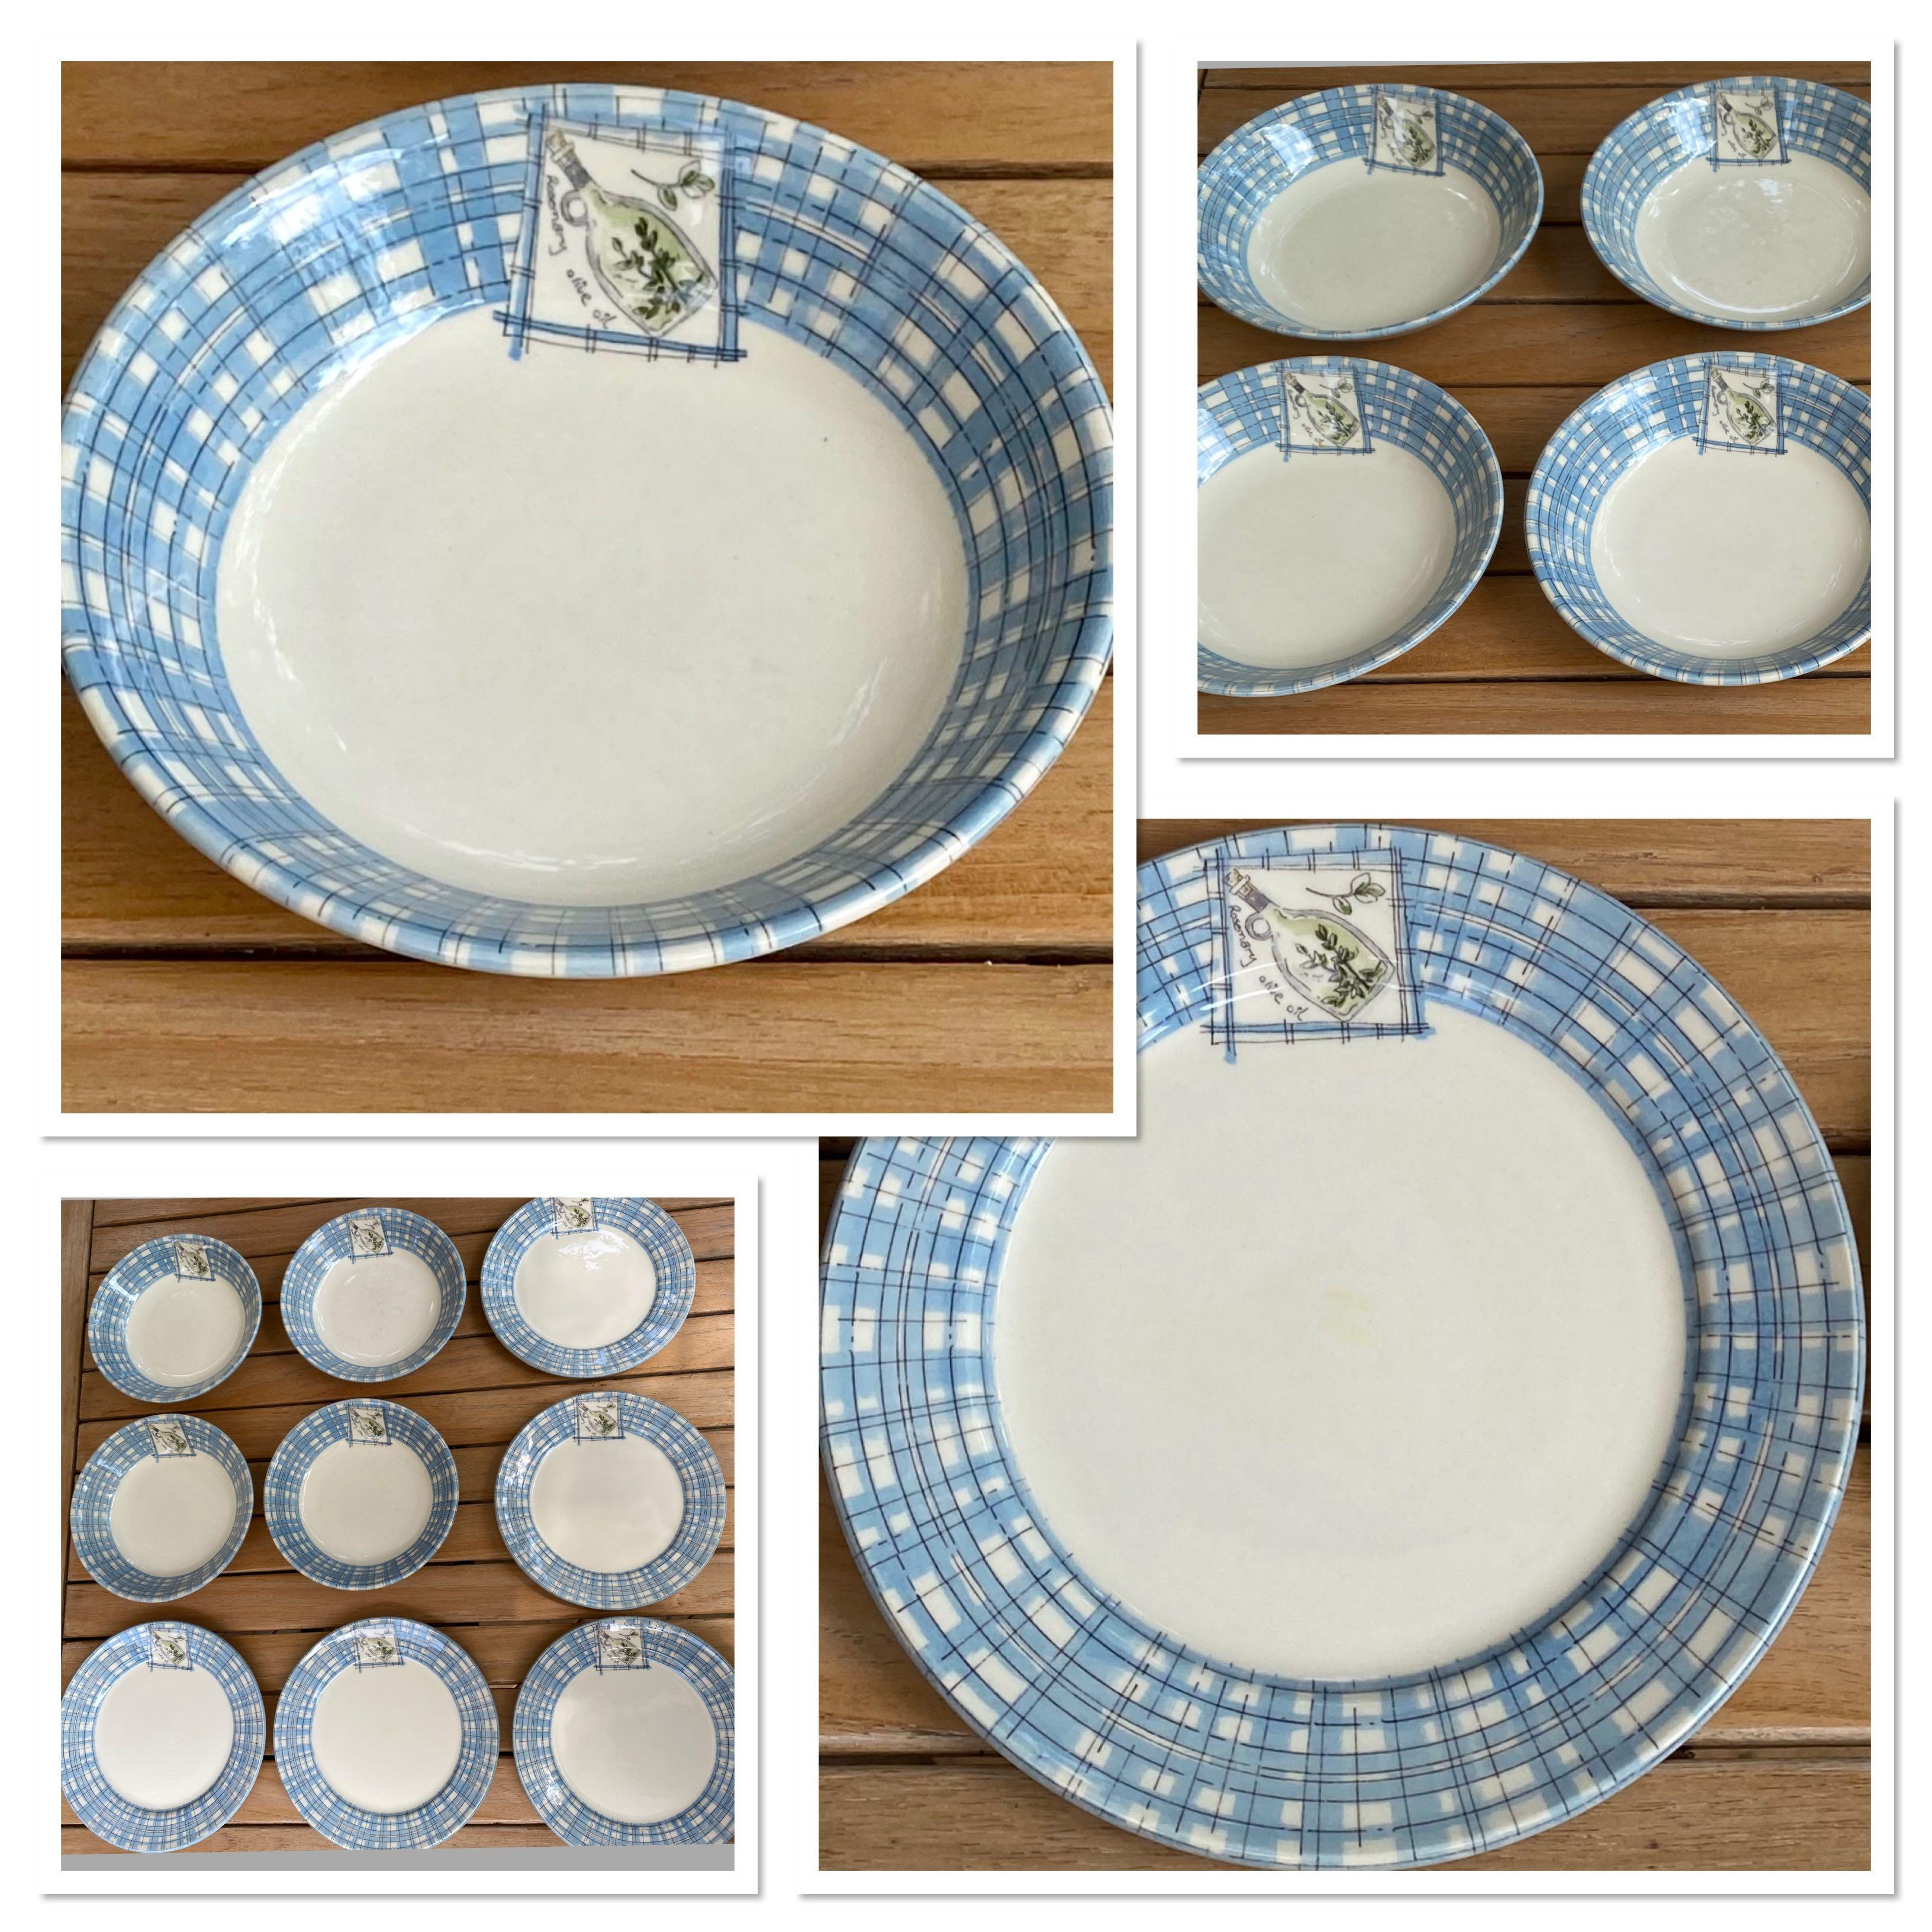 SUPER CUTE Salad plates(5)and bowls(4) made in Malaysia